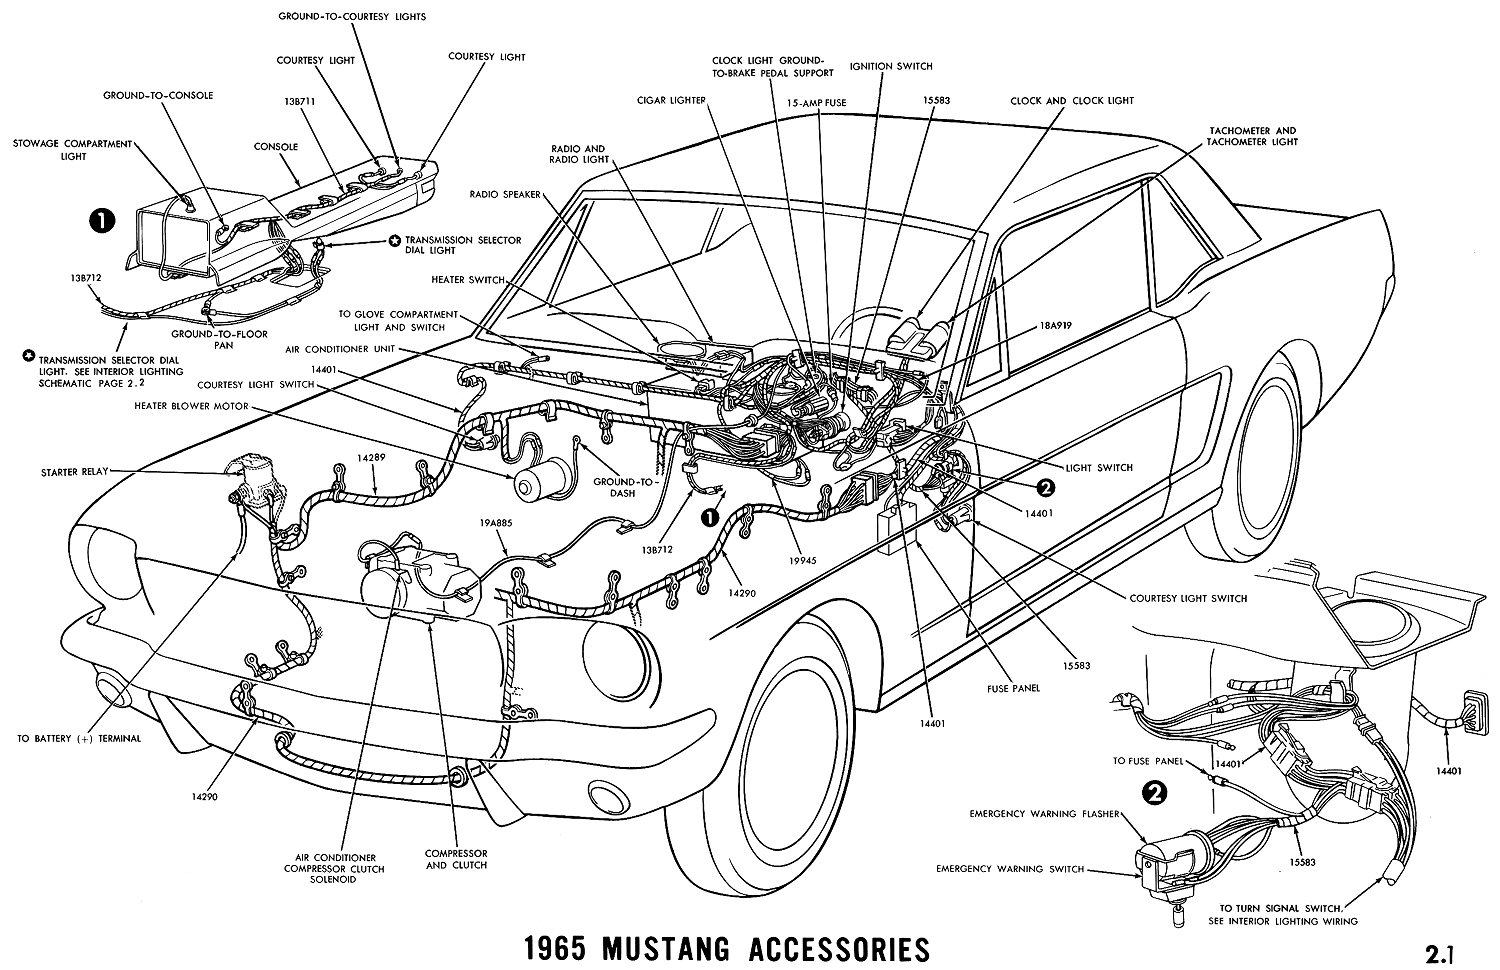 1965h 1965 mustang wiring diagrams average joe restoration 65 mustang 289 alternator wiring diagram at gsmx.co